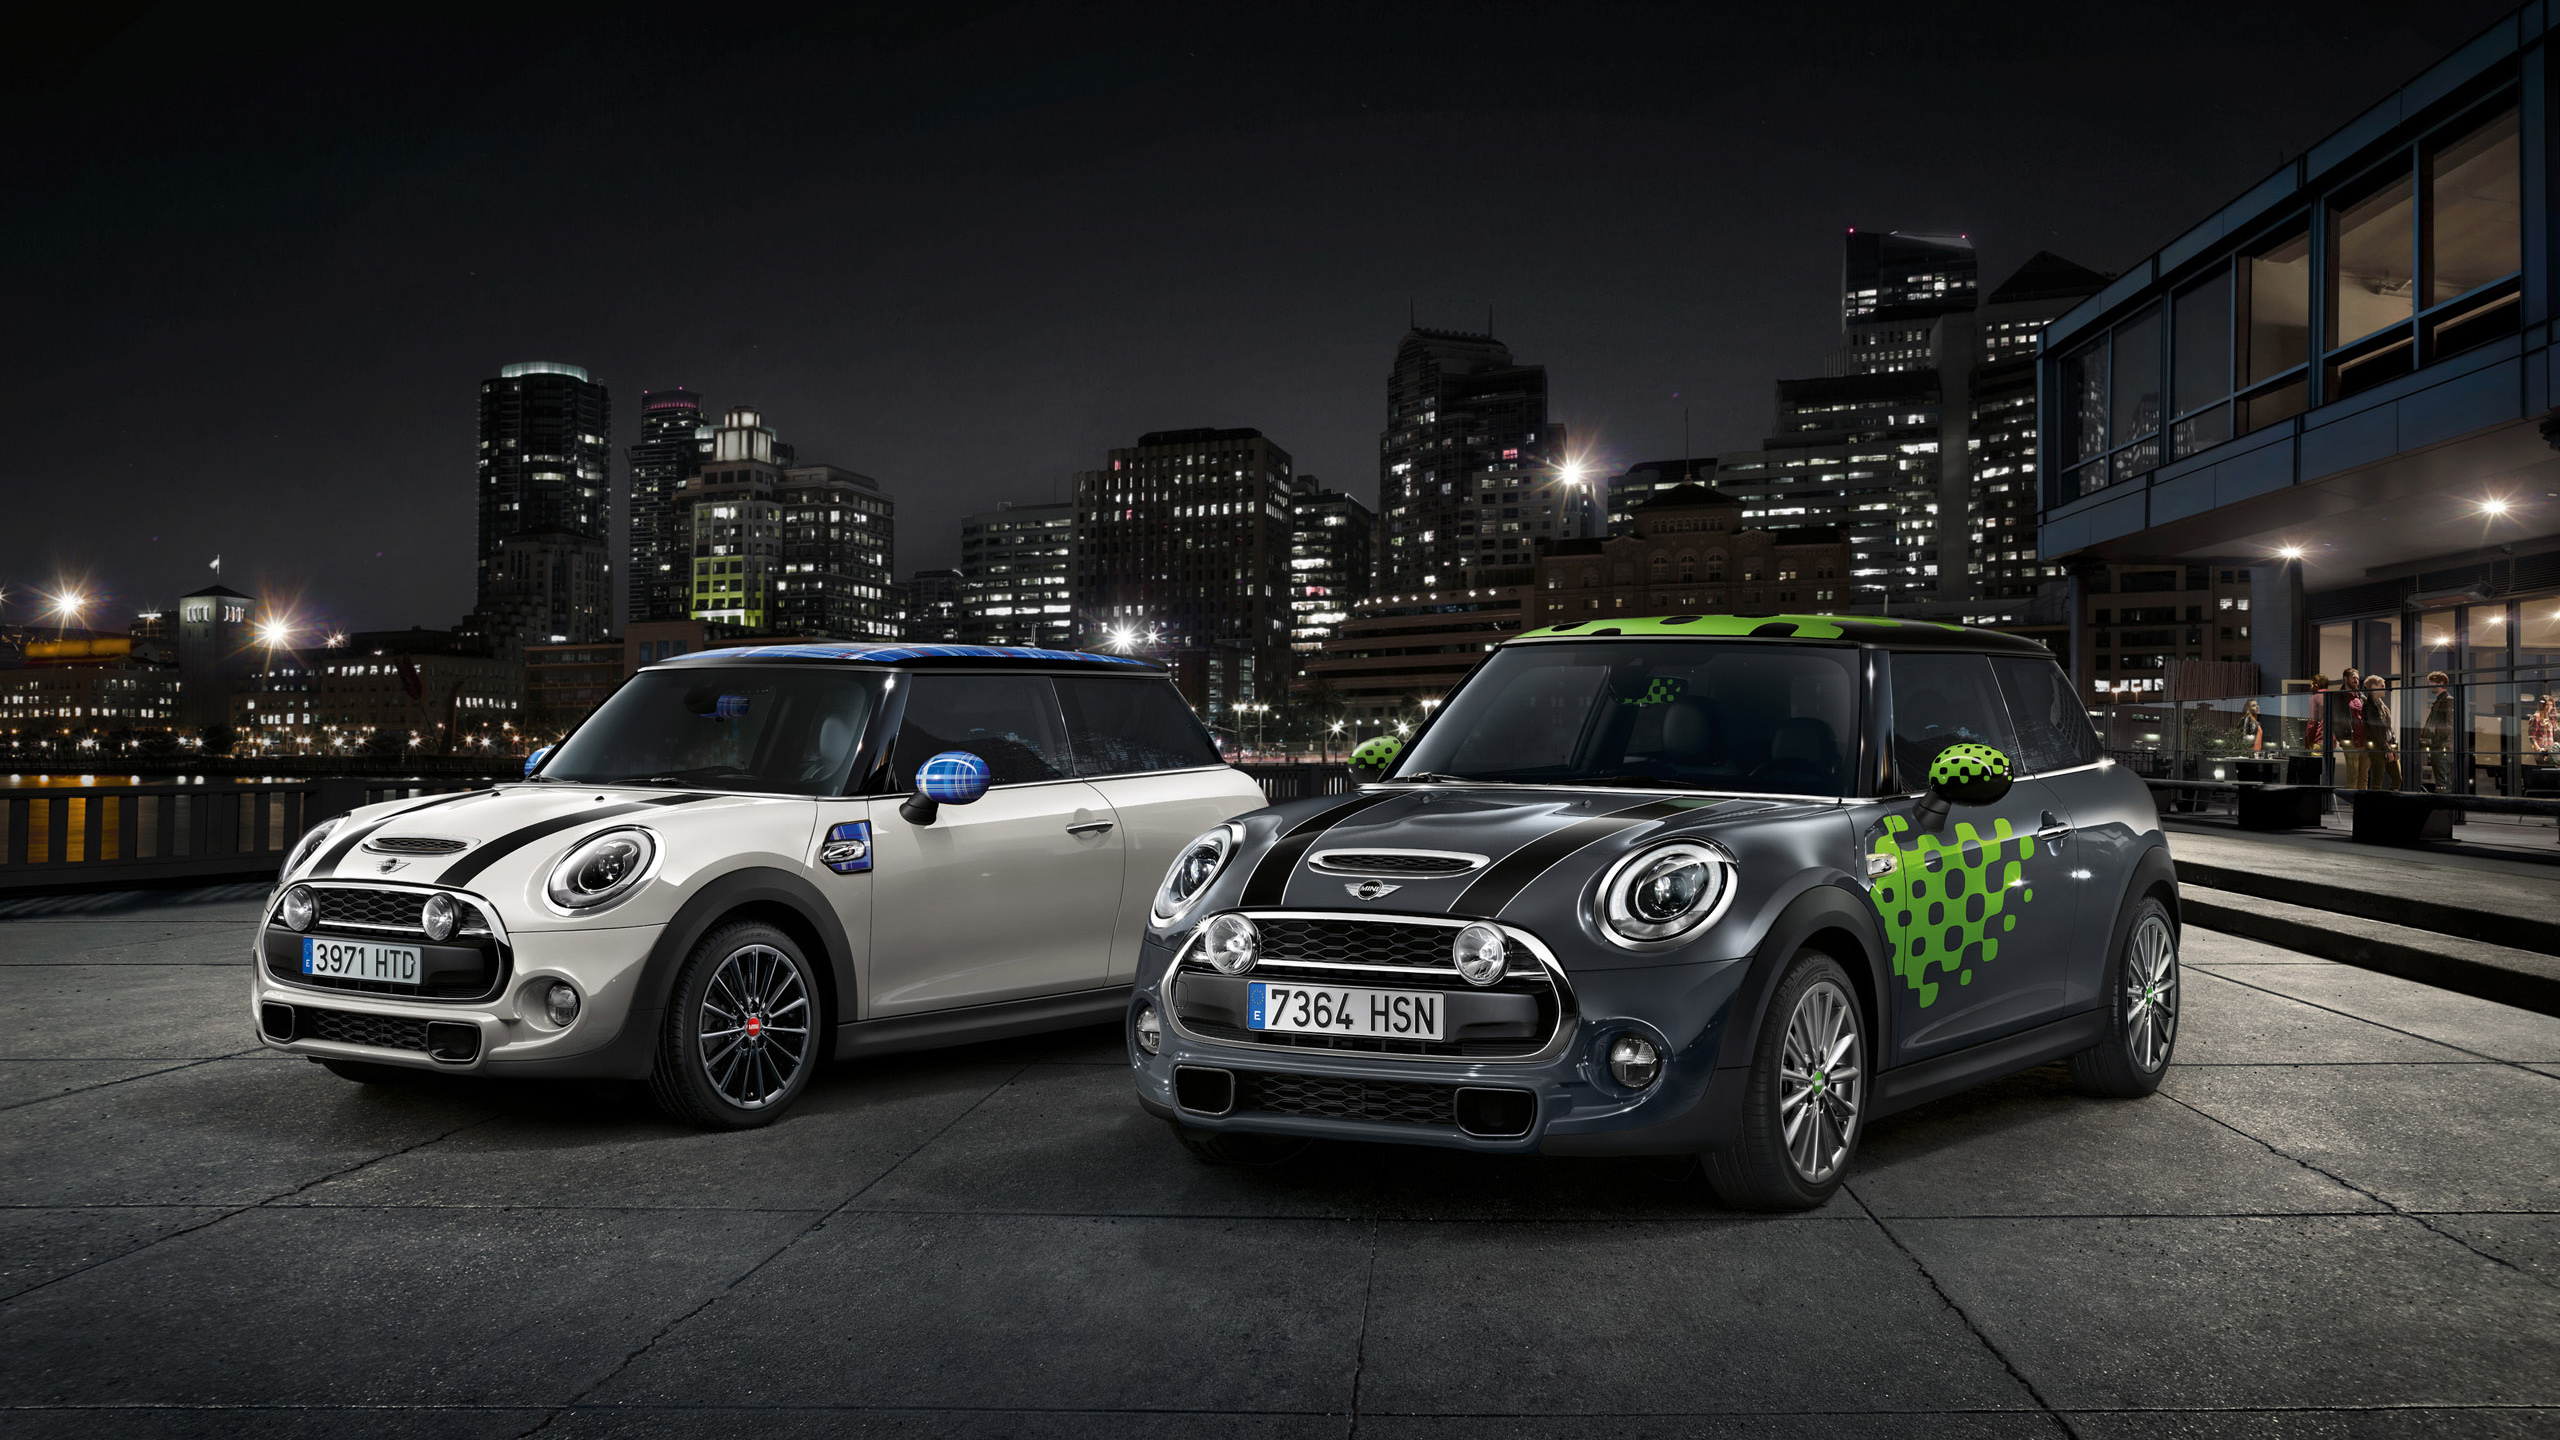 2014 MINI Cooper Accessories Wallpaper | HD Car Wallpapers